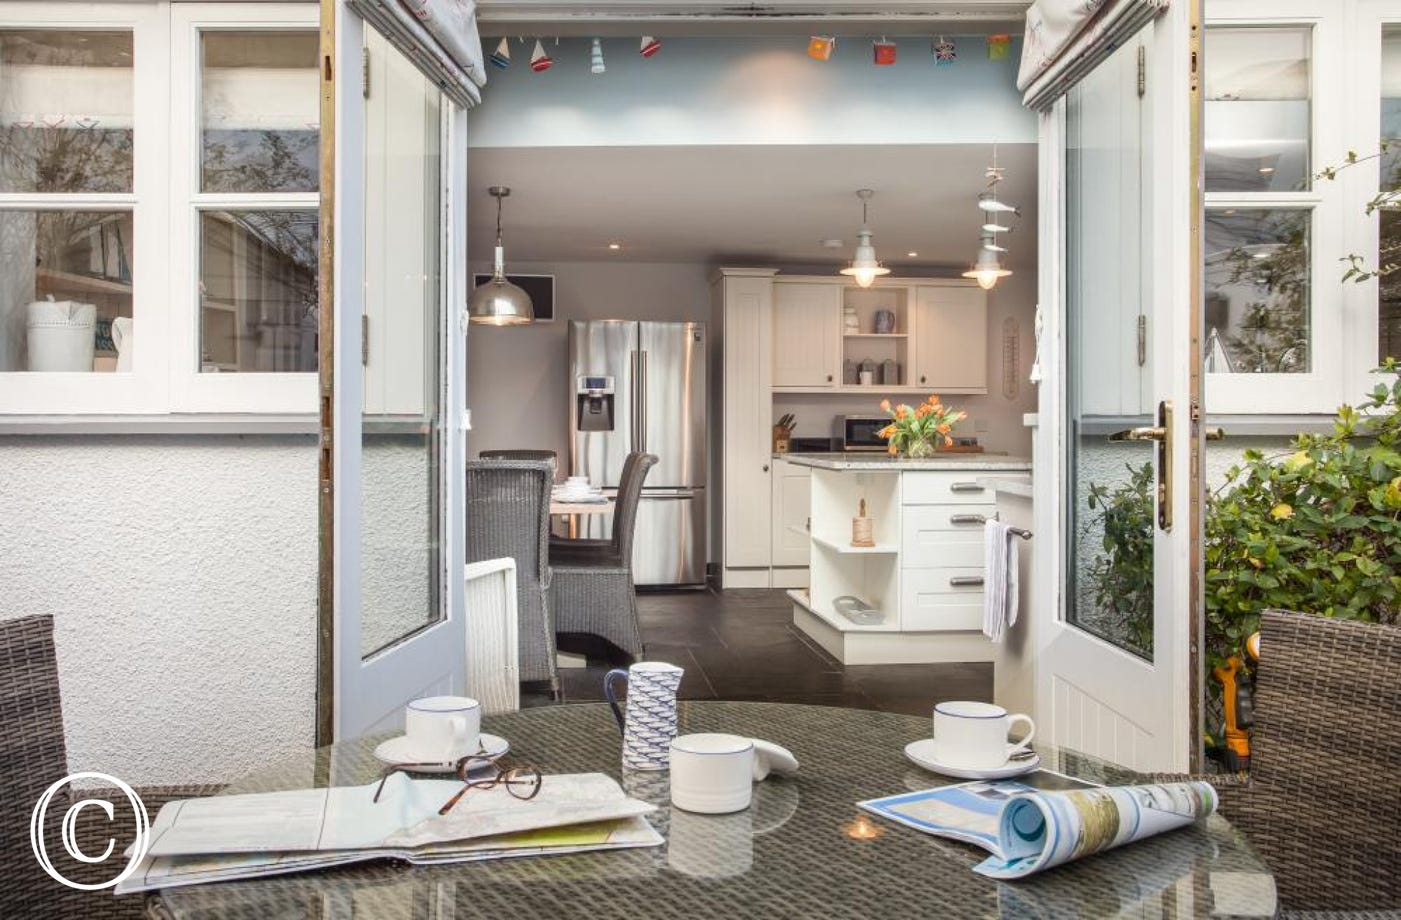 Open the kitchen French doors and enjoy outdoor courtyard ambience